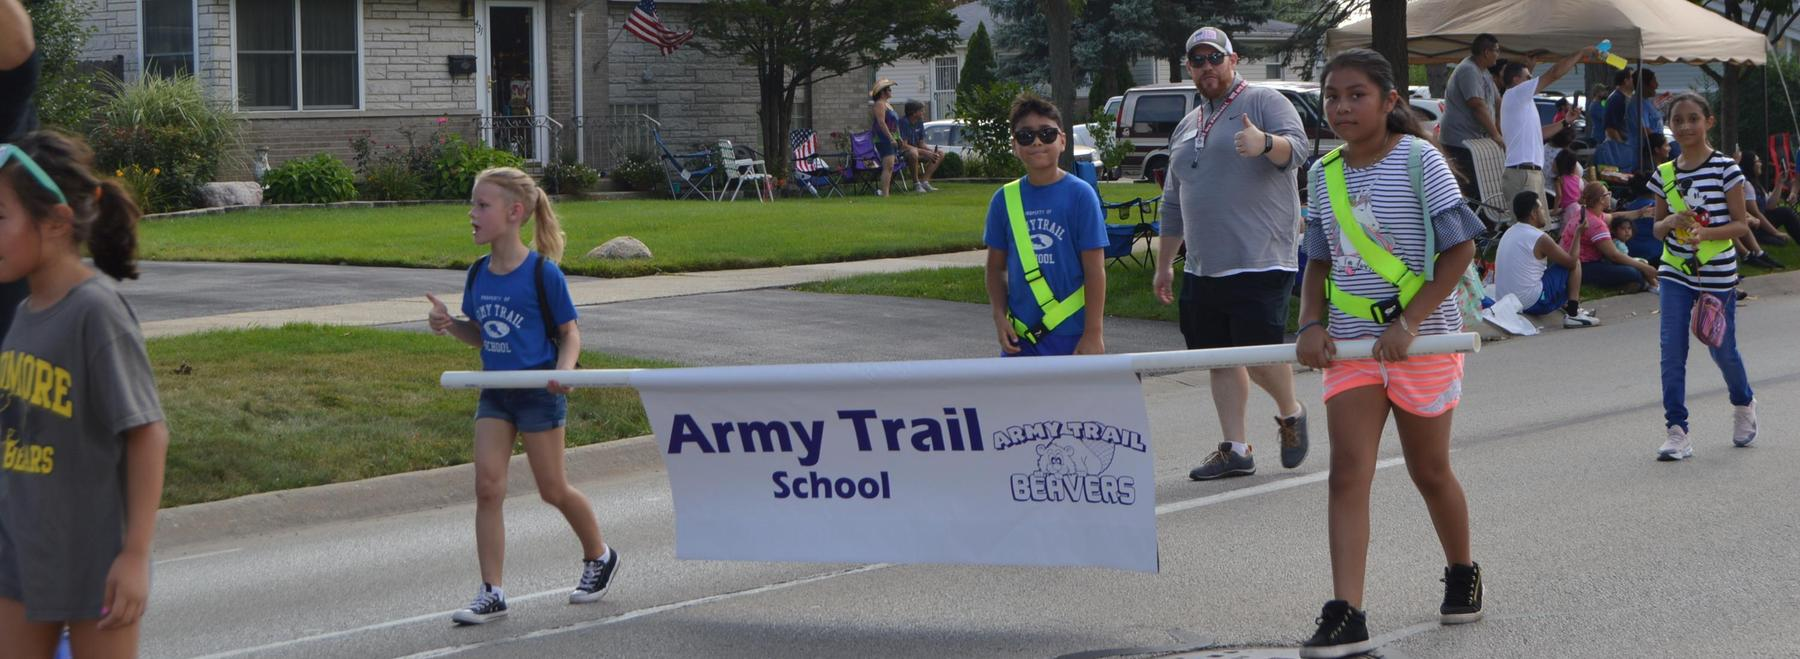 Army Trail in parade